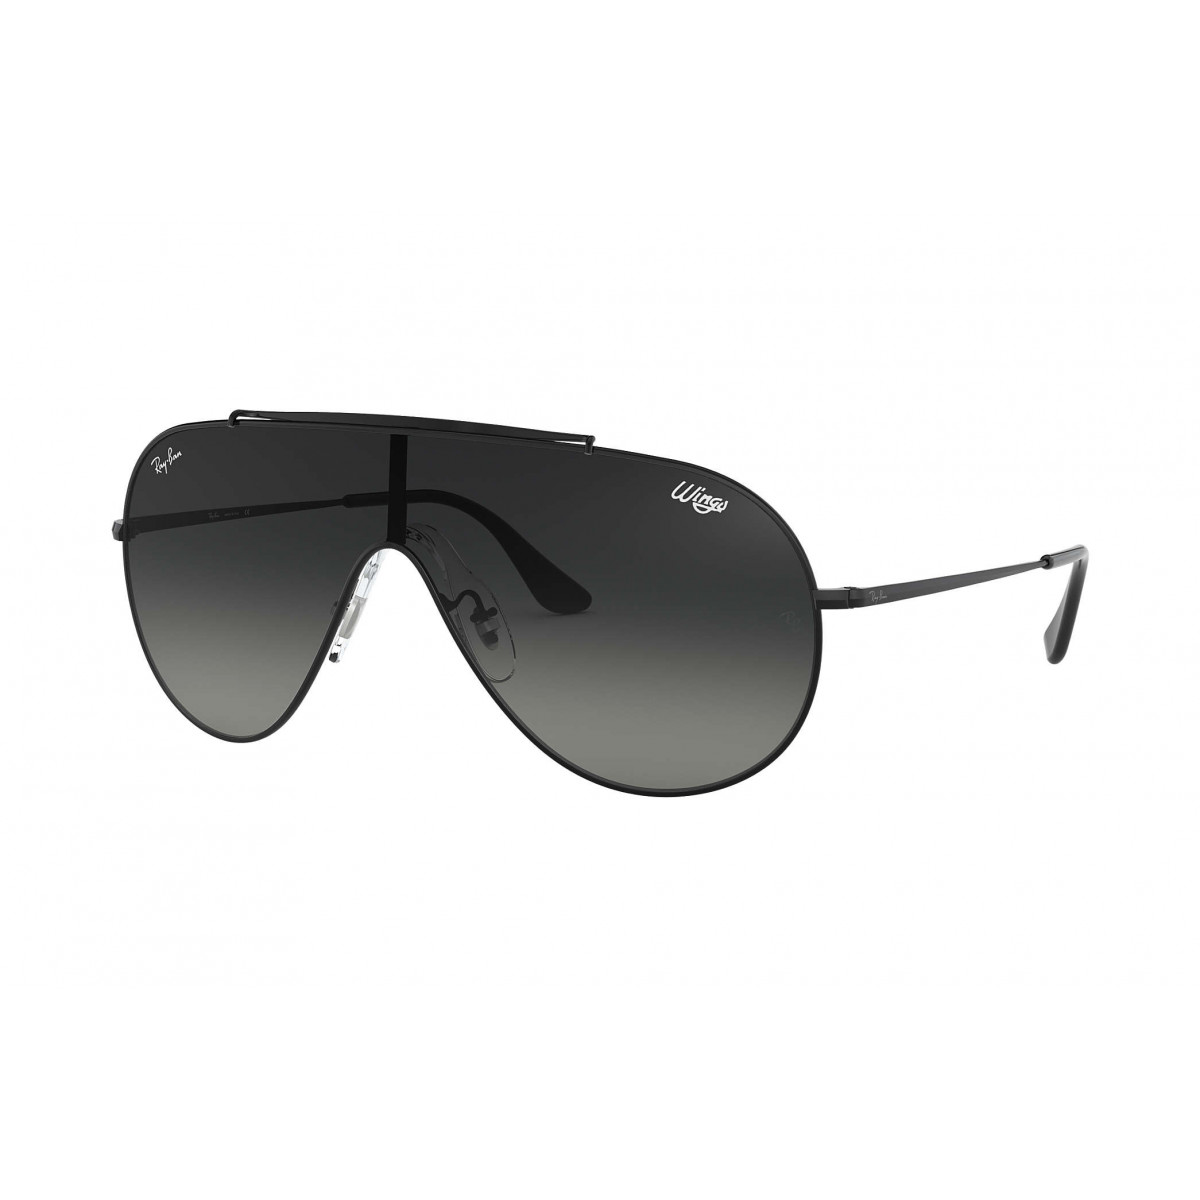 Óculos de Sol Ray Ban Wings RB3597 002/11 33